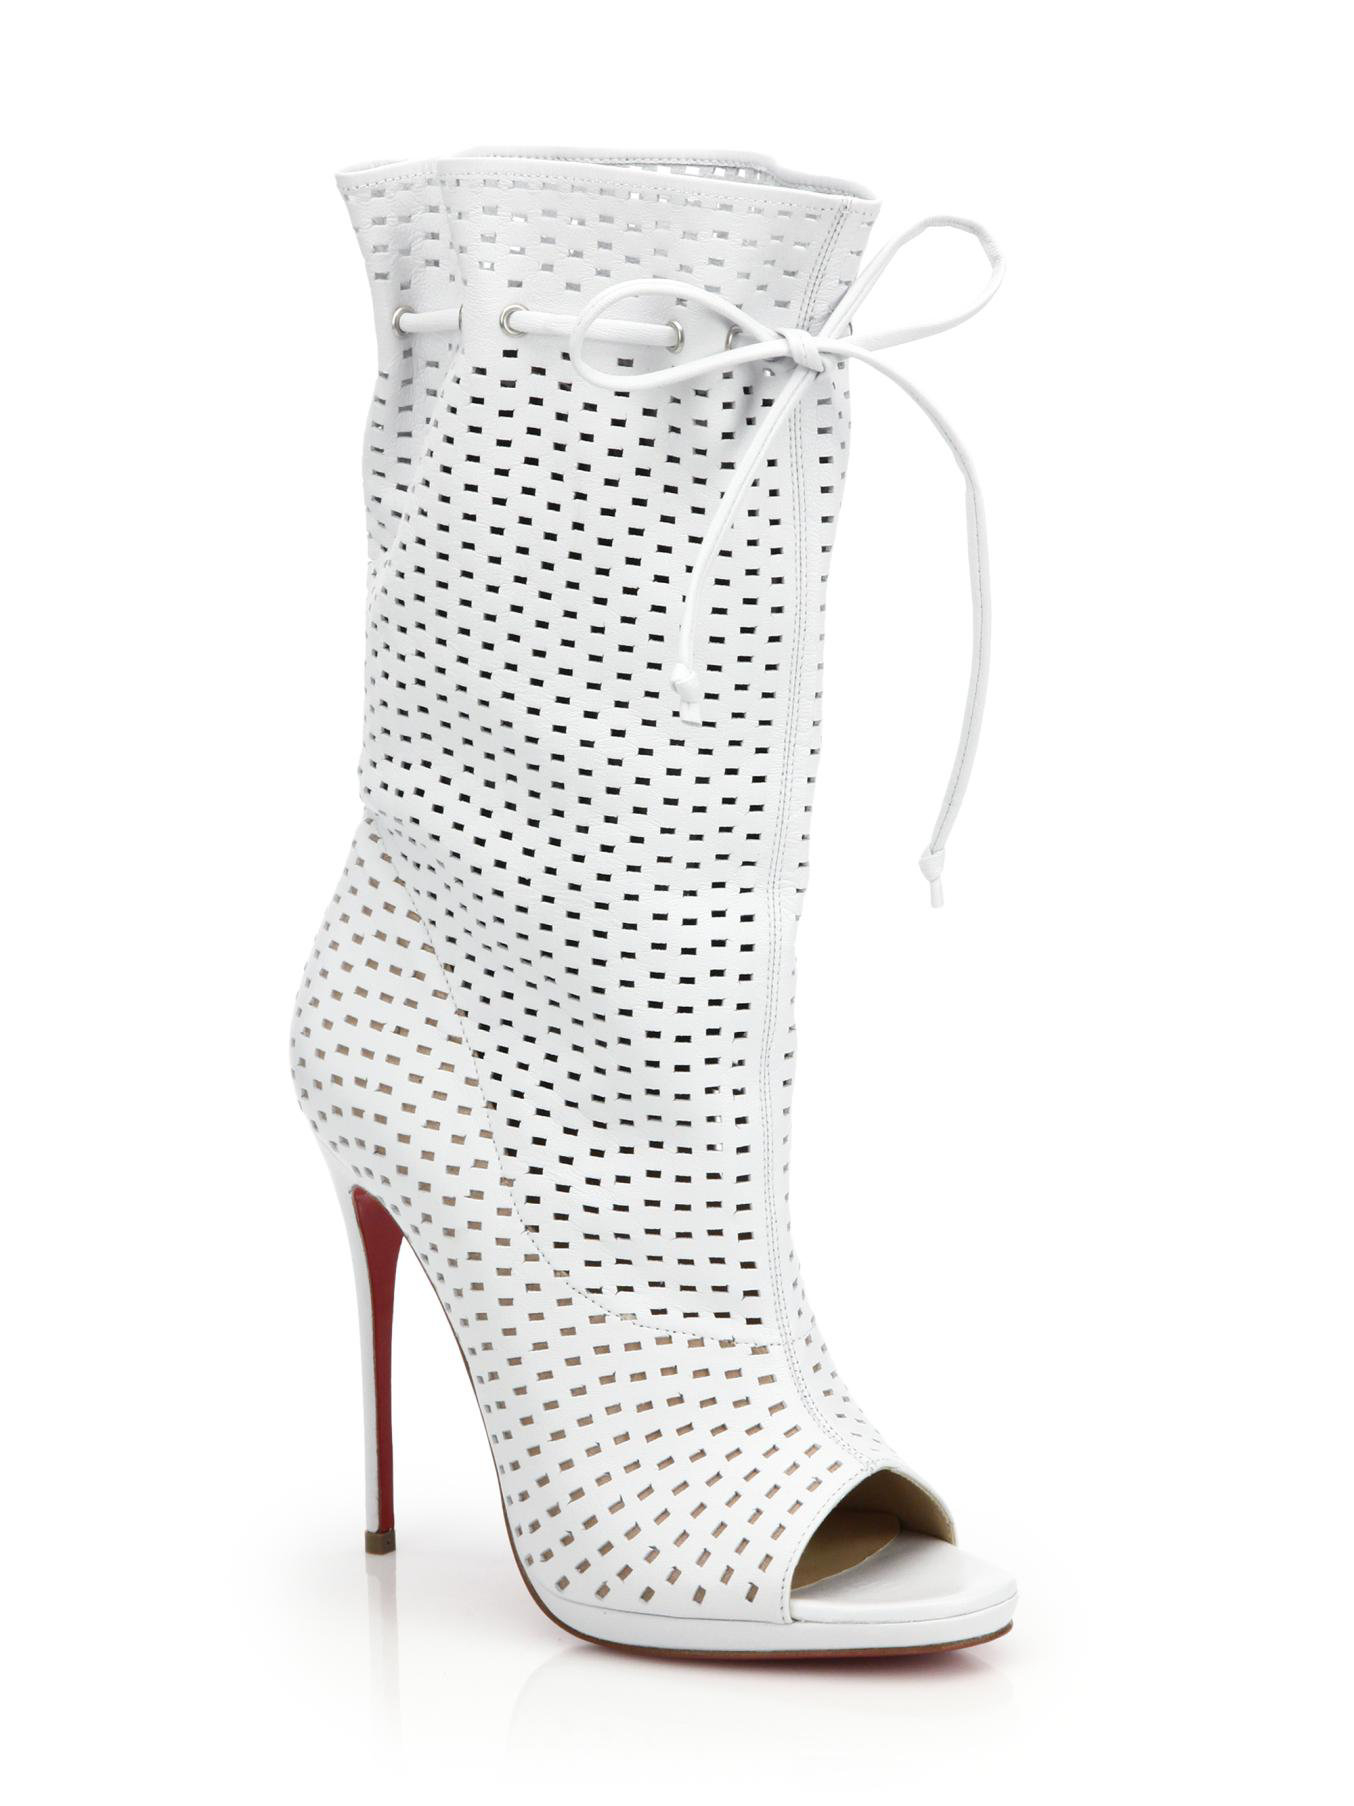 Christian Louboutin Jennifer Perforated Leather Open Toe